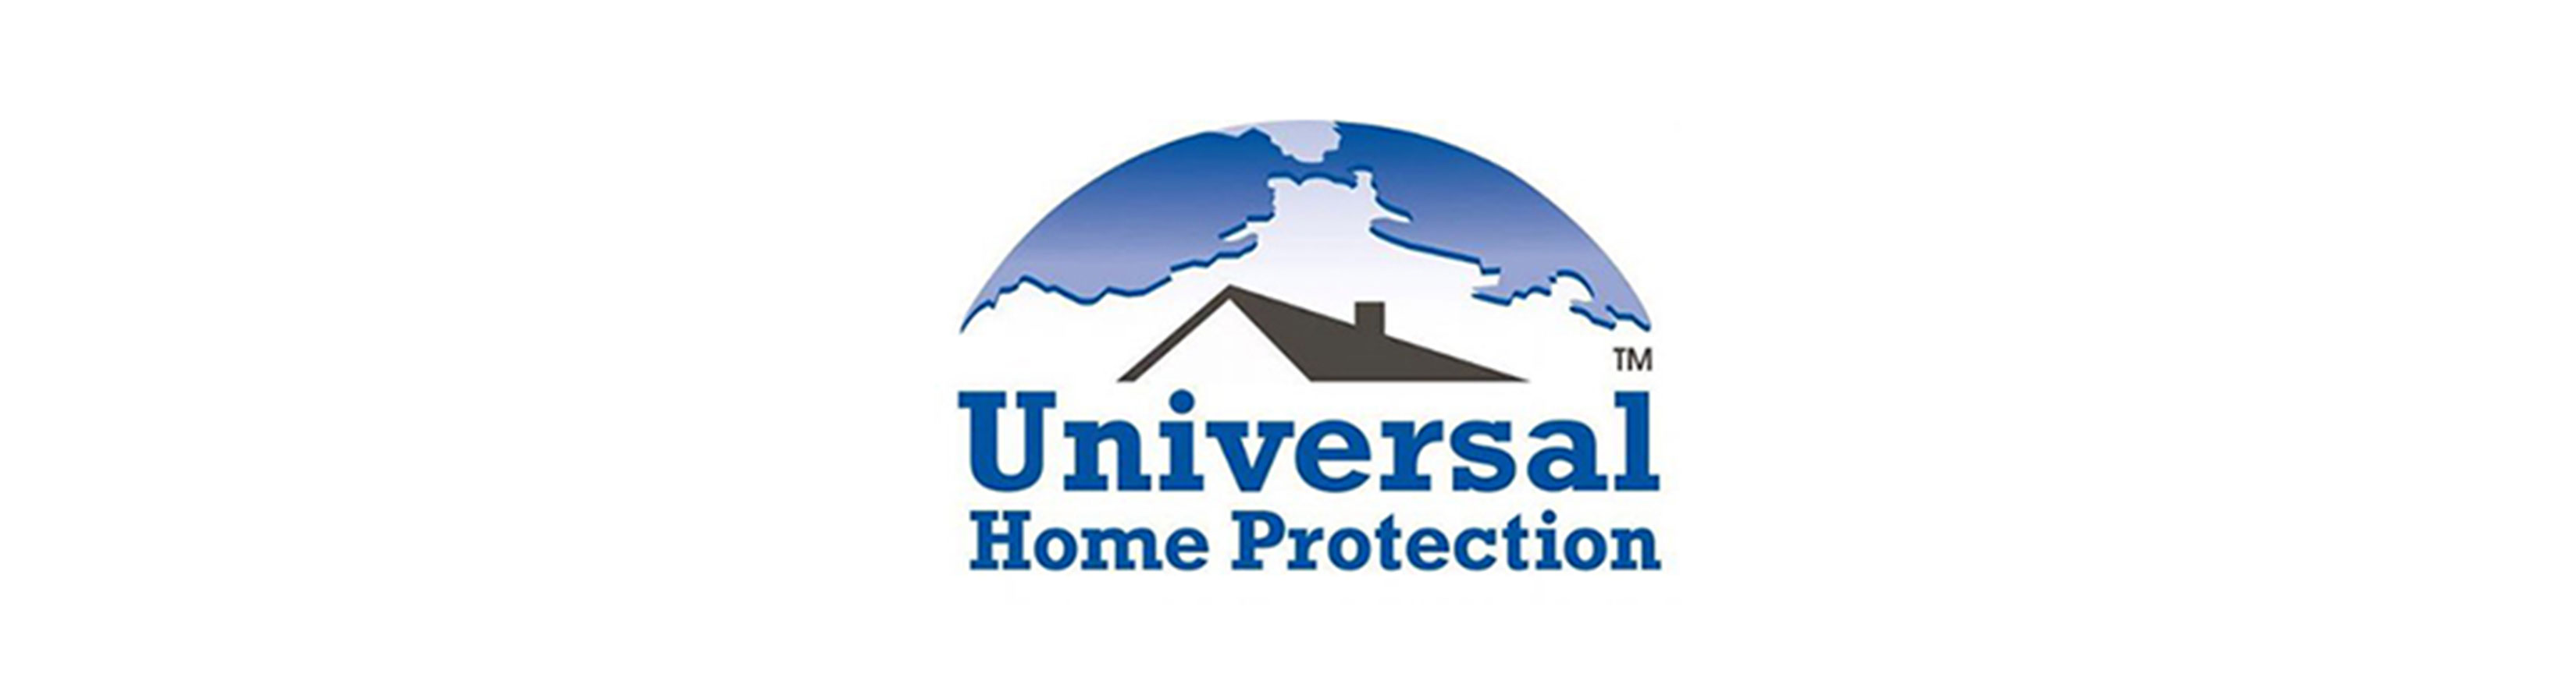 universal home protection - Logo